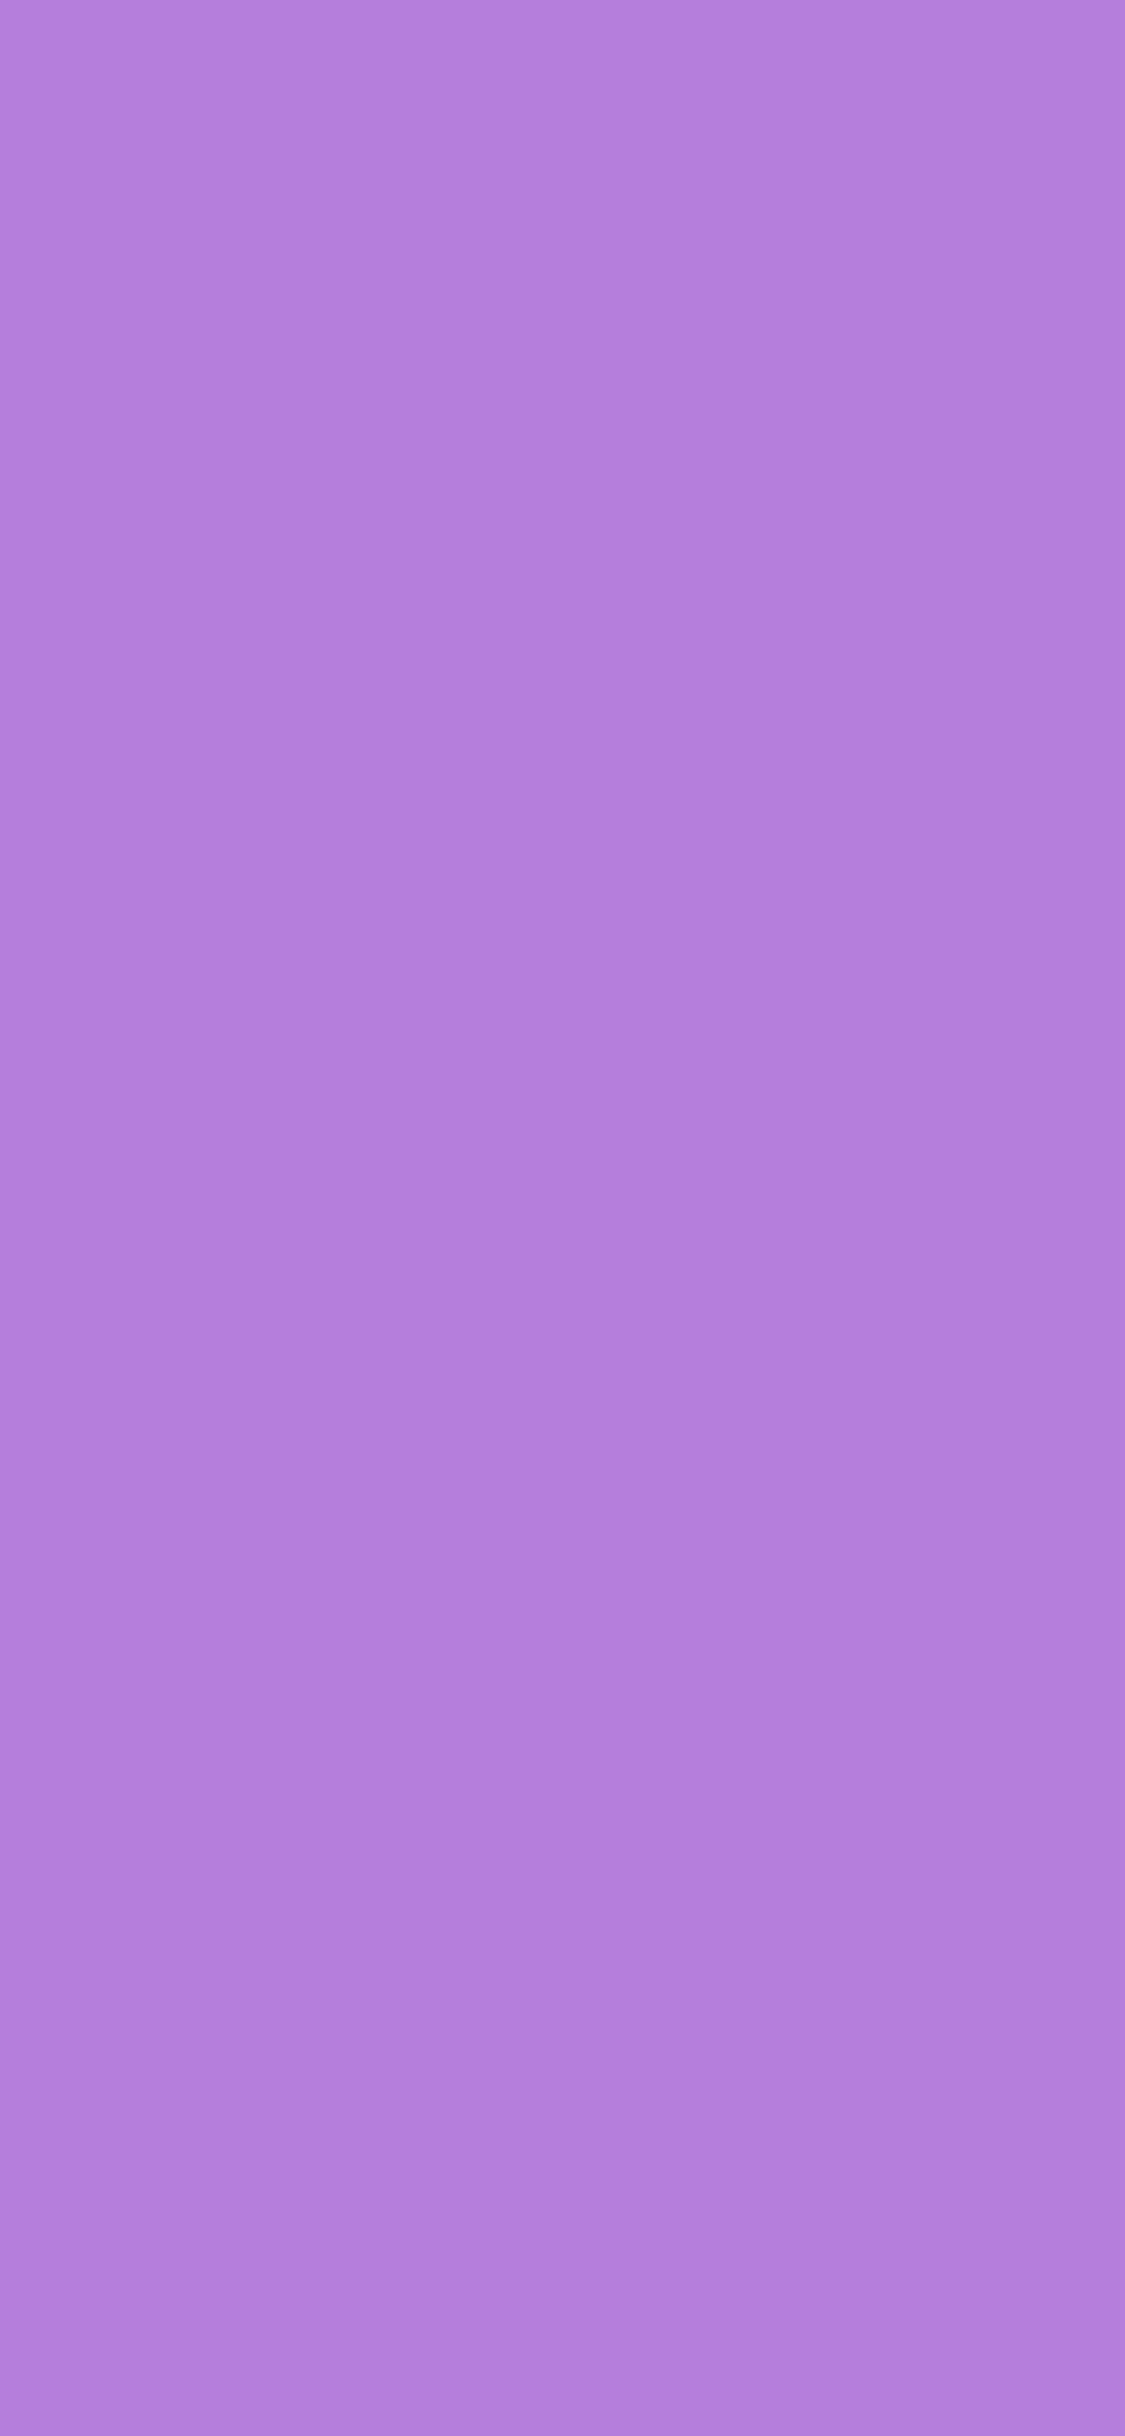 1125x2436 Lavender Floral Solid Color Background